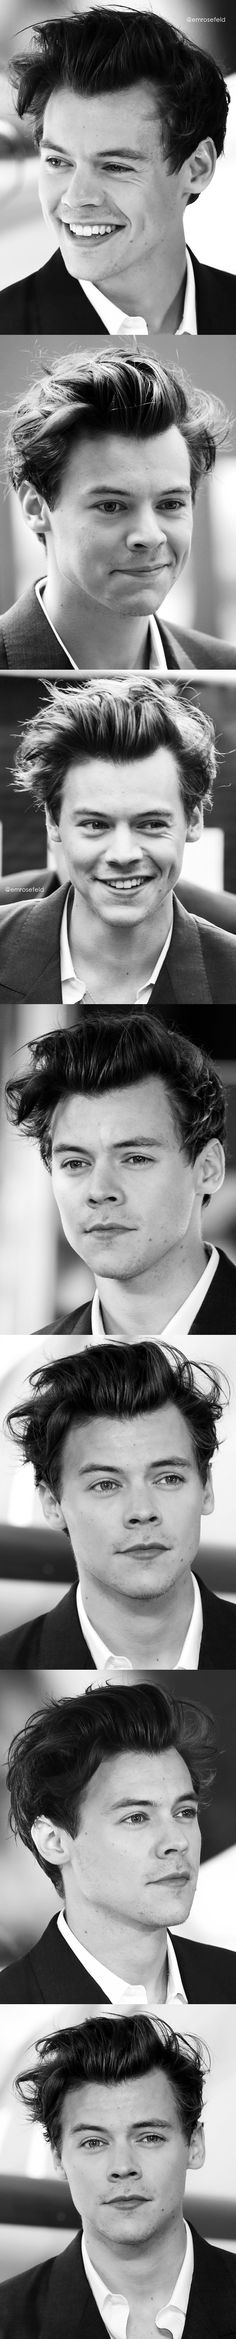 Harry Styles | Dunkirk world premiere 7.13.17 | emrosefeld |